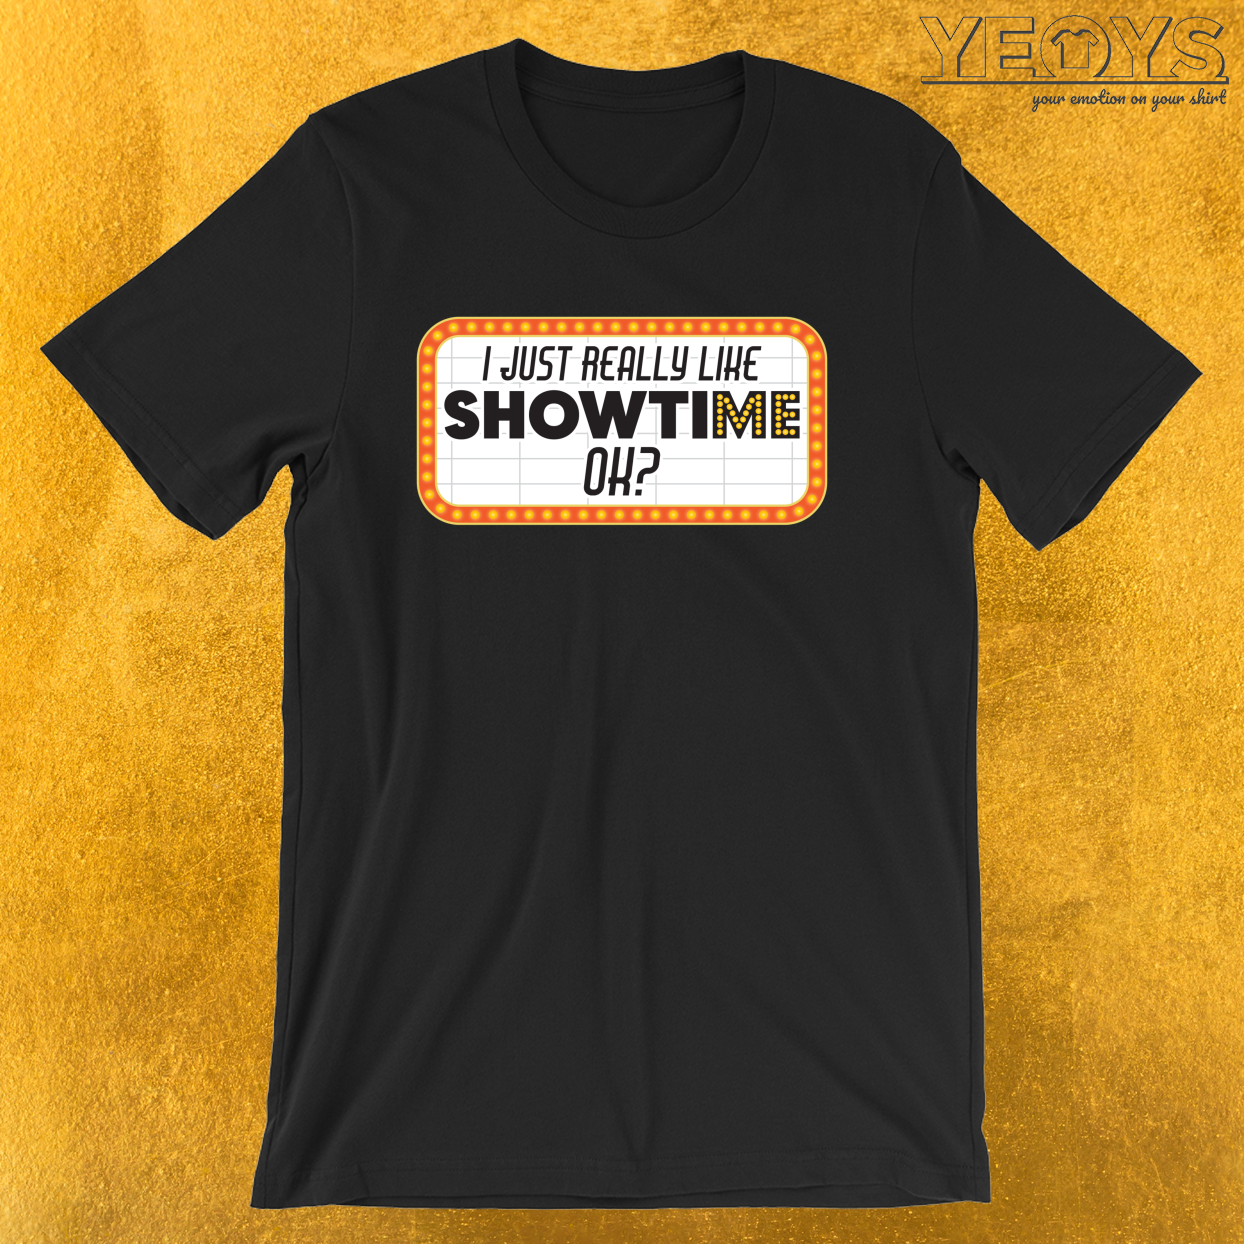 I Just Really Like Showtime – Theater Nerd Tee